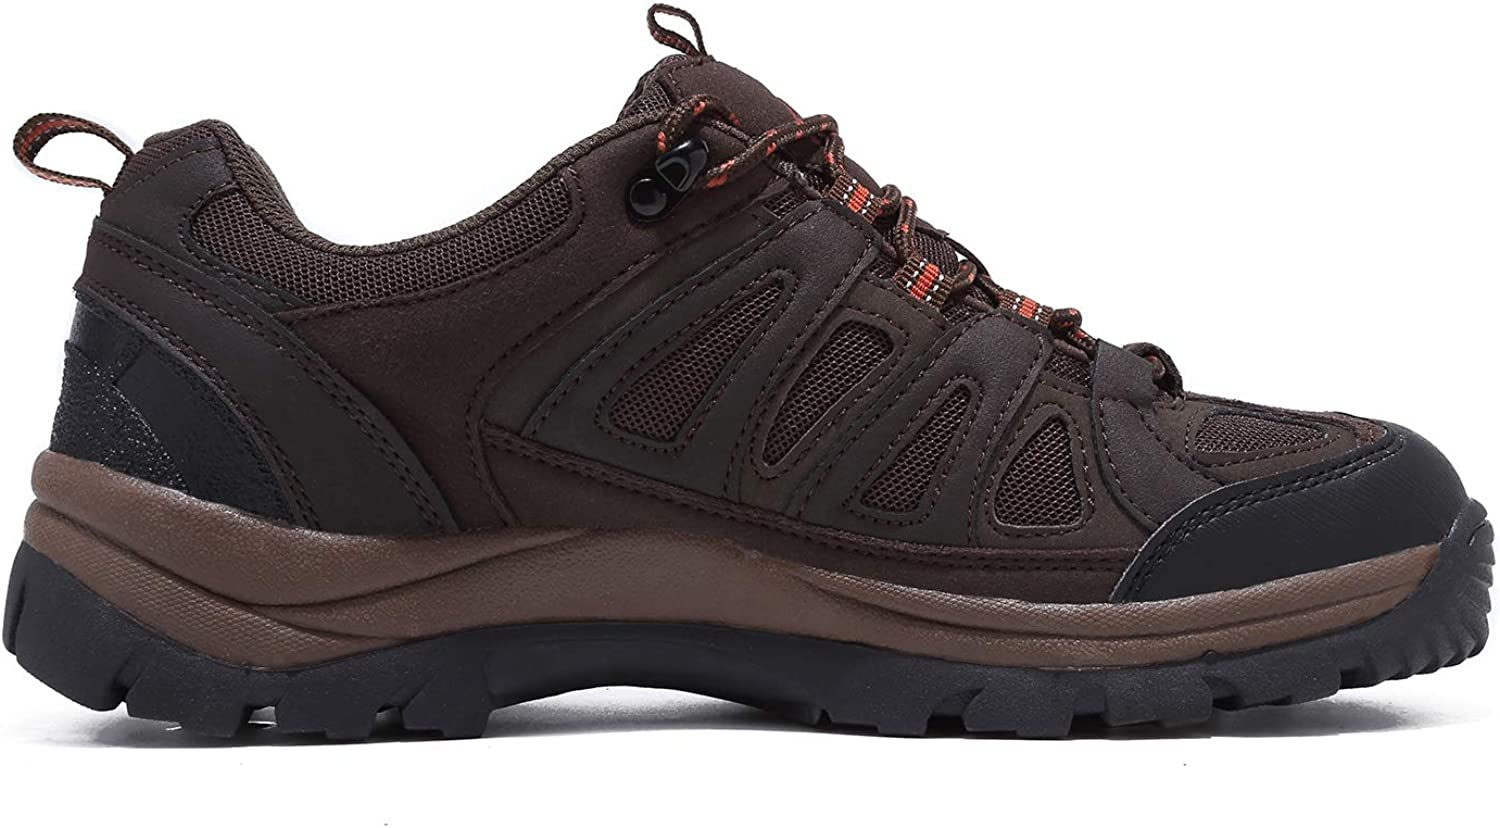 EYUSHIJIA Men s Outdoor Waterproof Hiking Shoes